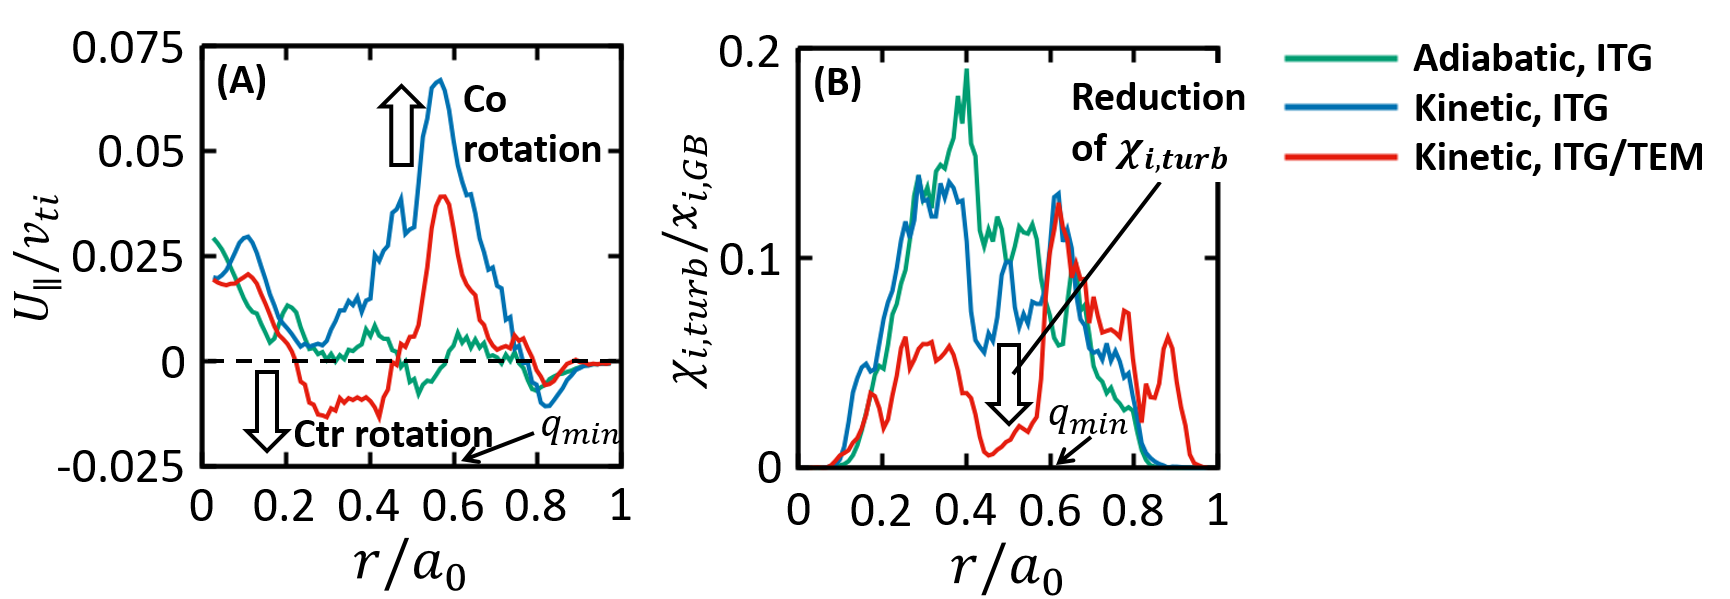 Radial profile of (A) toroidal rotation and (B) ion turbulent thermal diffusivity normalized by gyro-Bohm one in flux-driven turbulences.